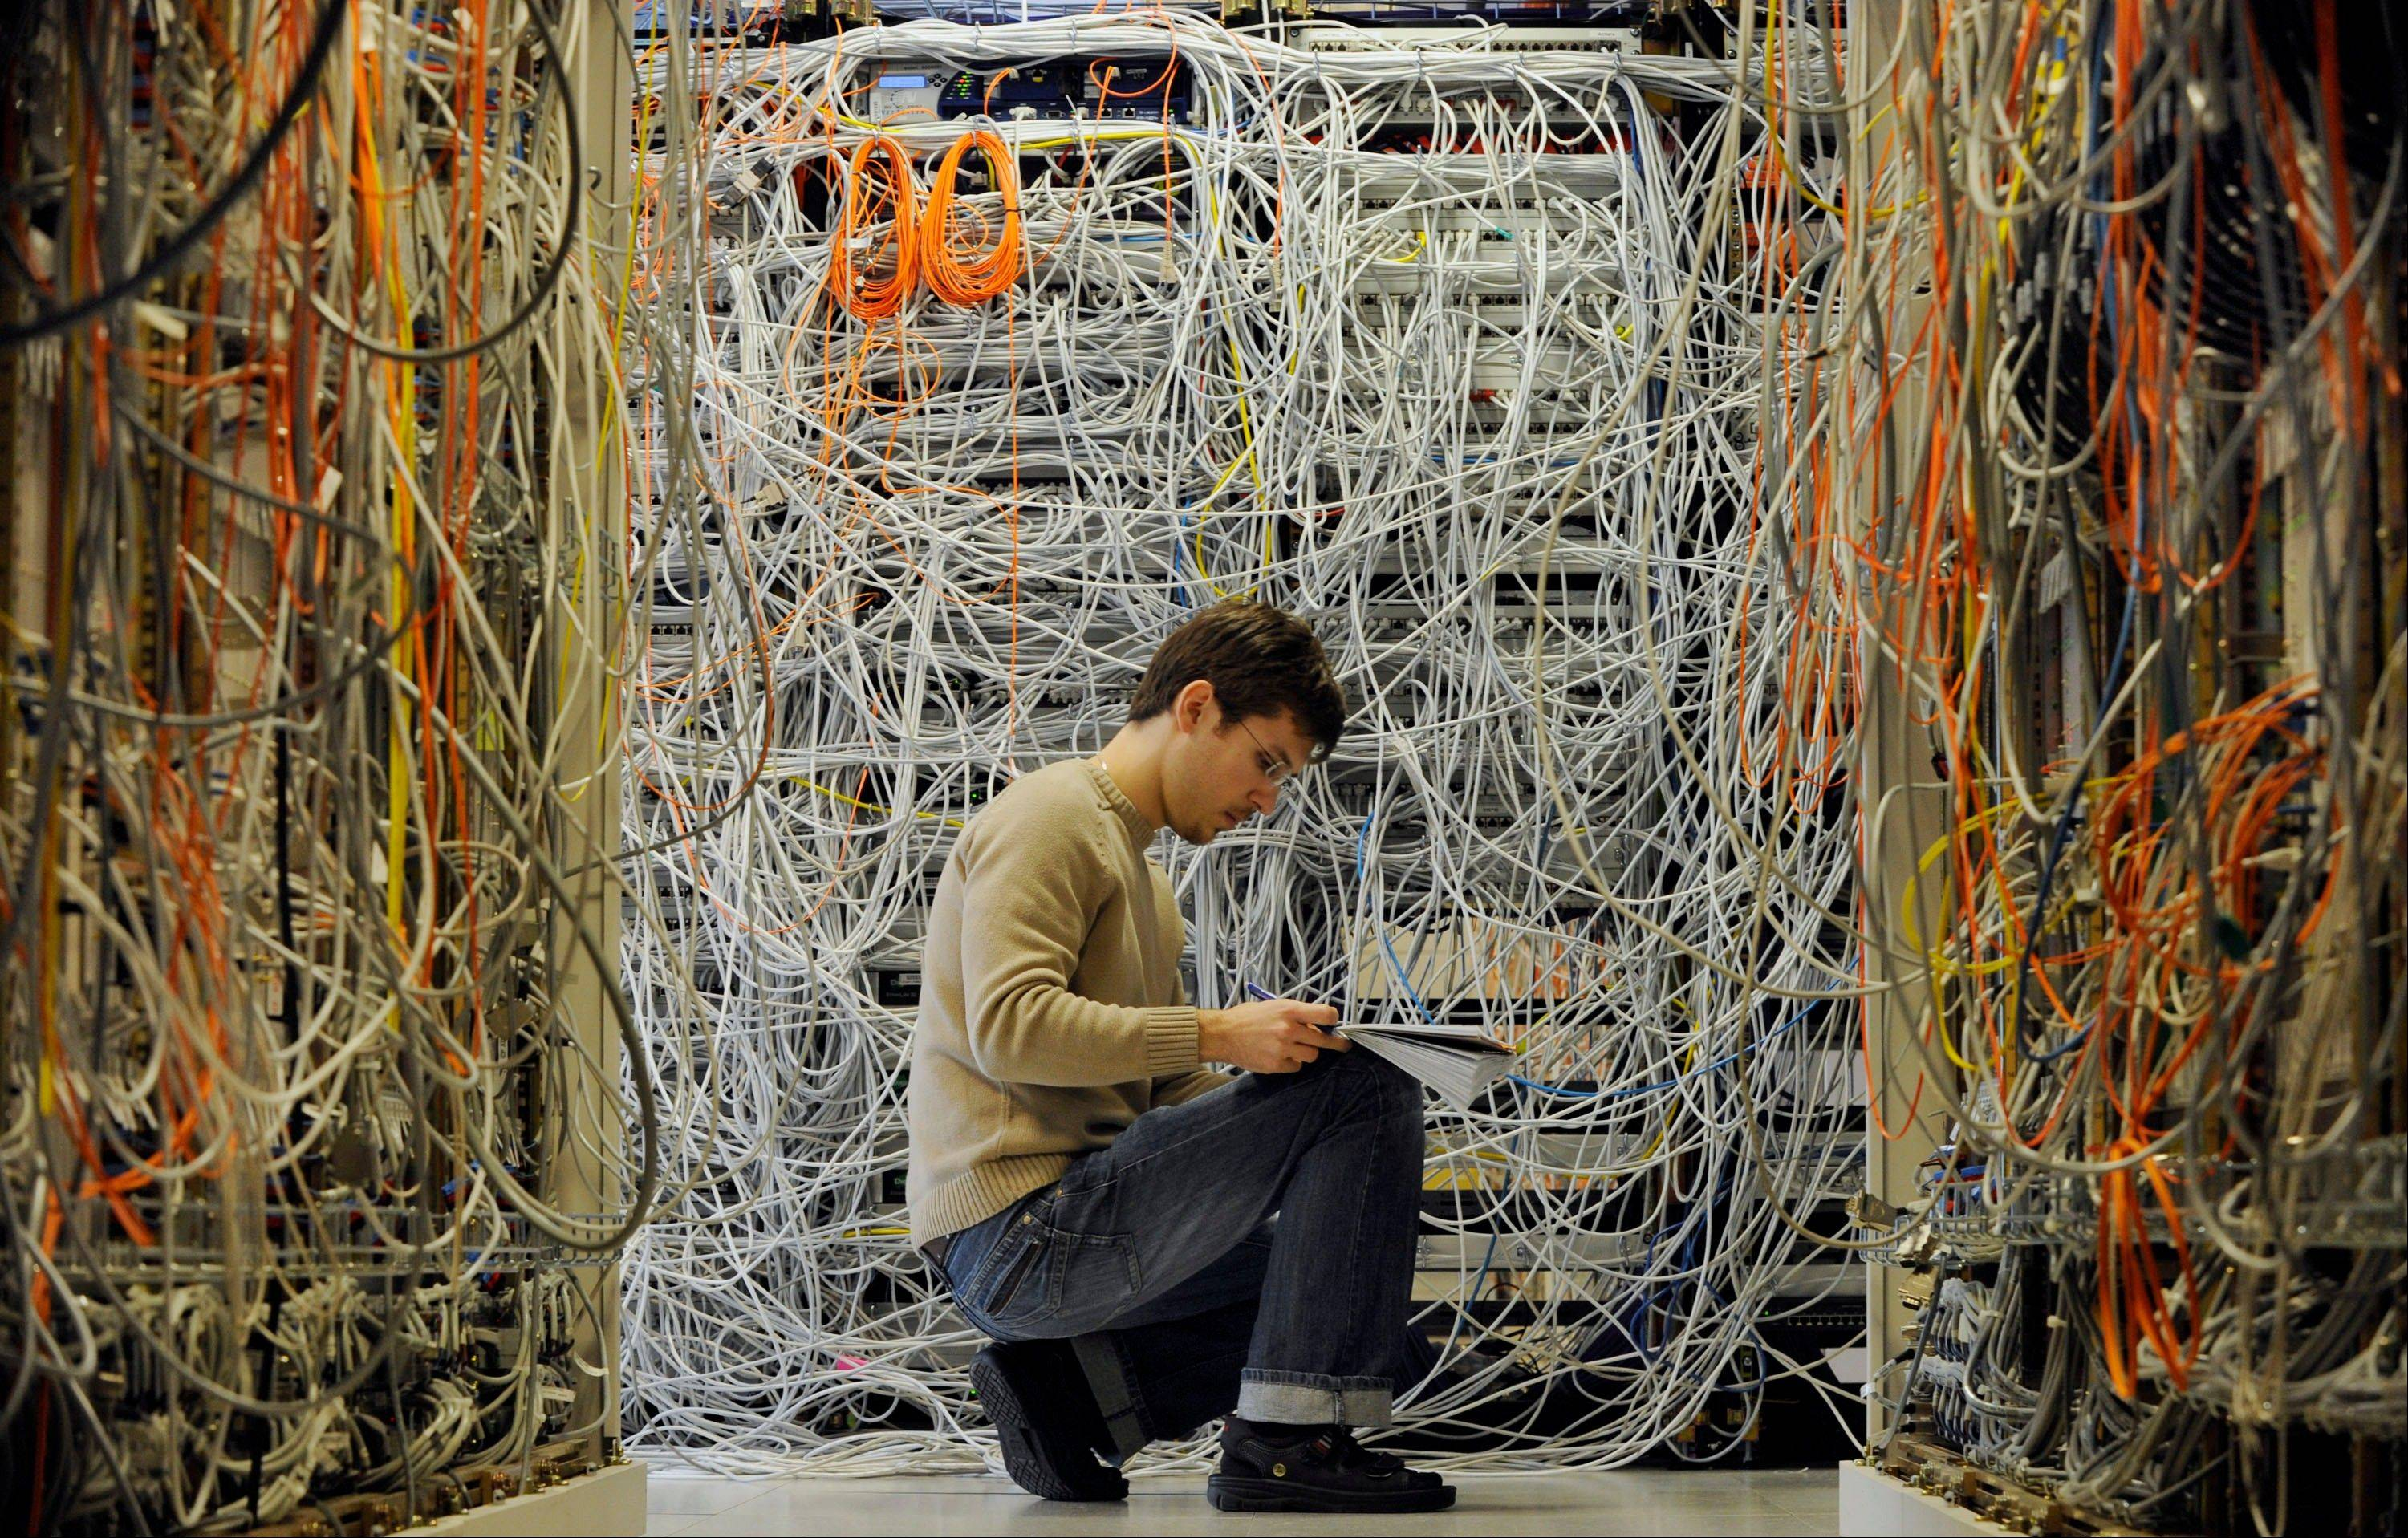 An engineer checks communication cables in the Media Gateway (MGW) lab simulating translation between disparate telecommunications networks, in Ericsson's research and development center in Budapest, Hungary.